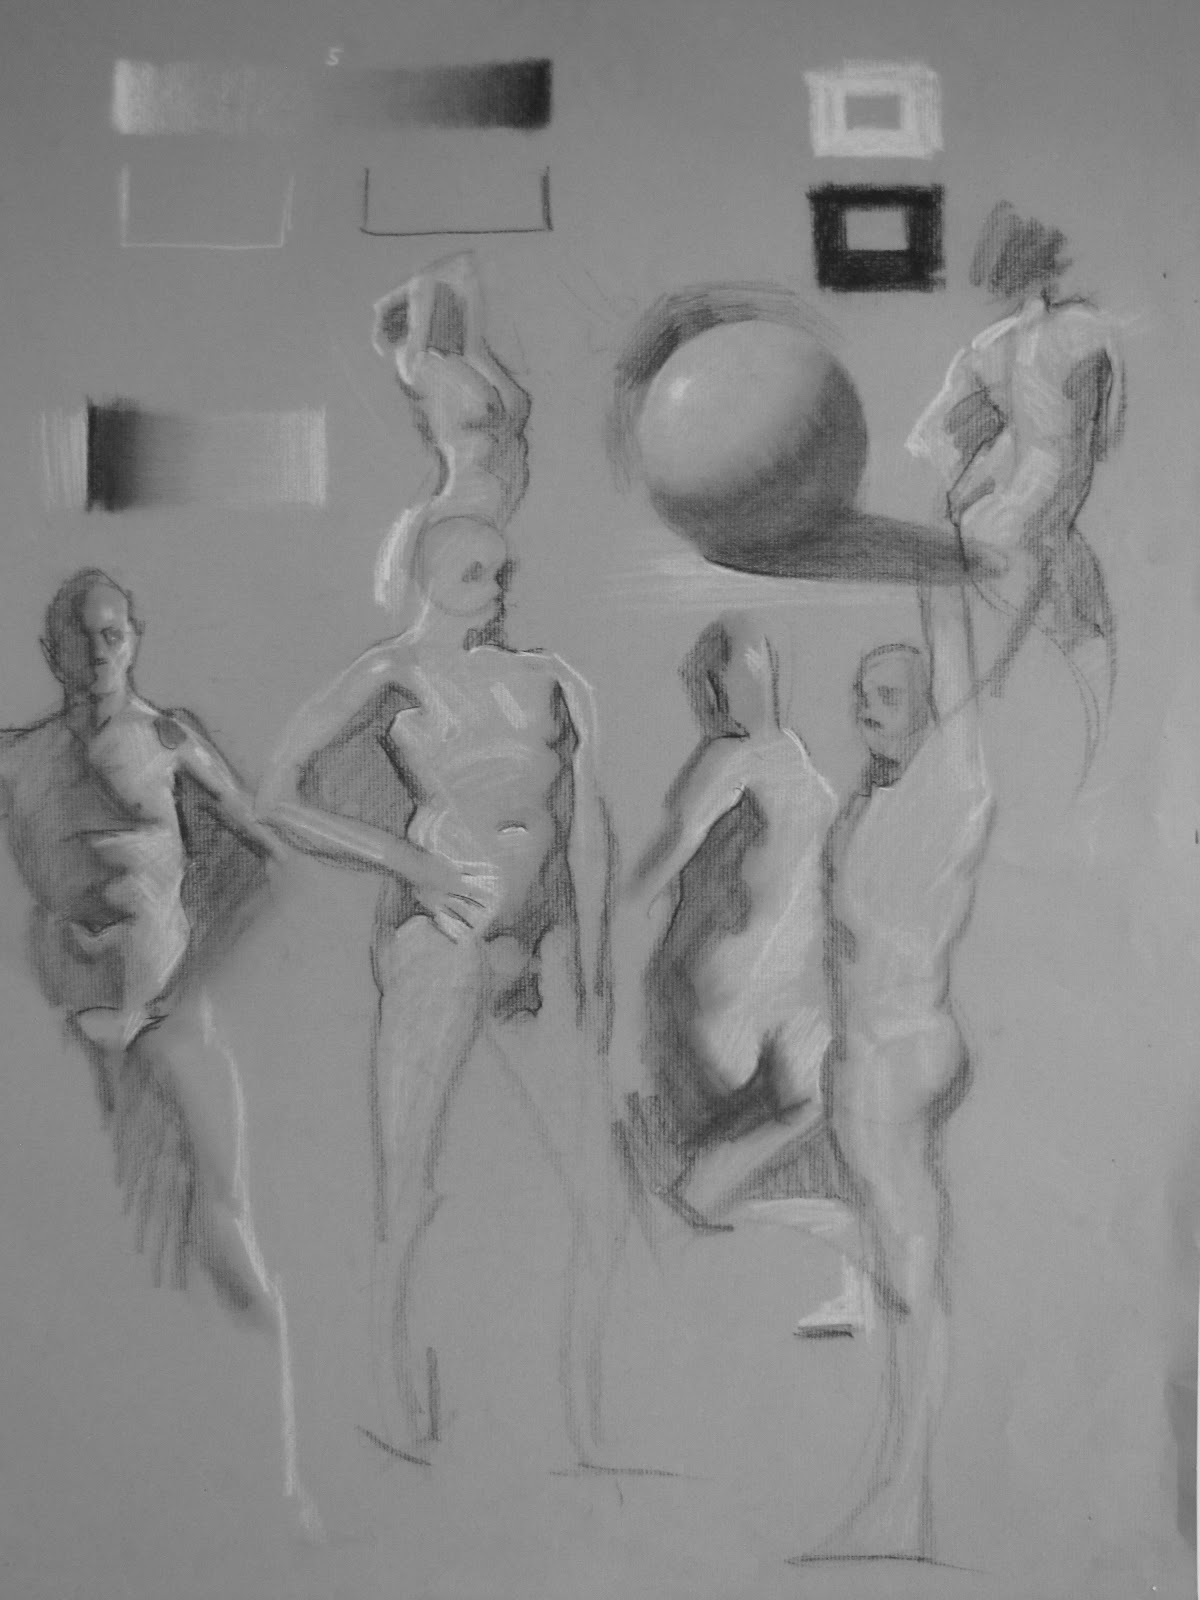 Drawn figurine shadow The The Figure PM Draw